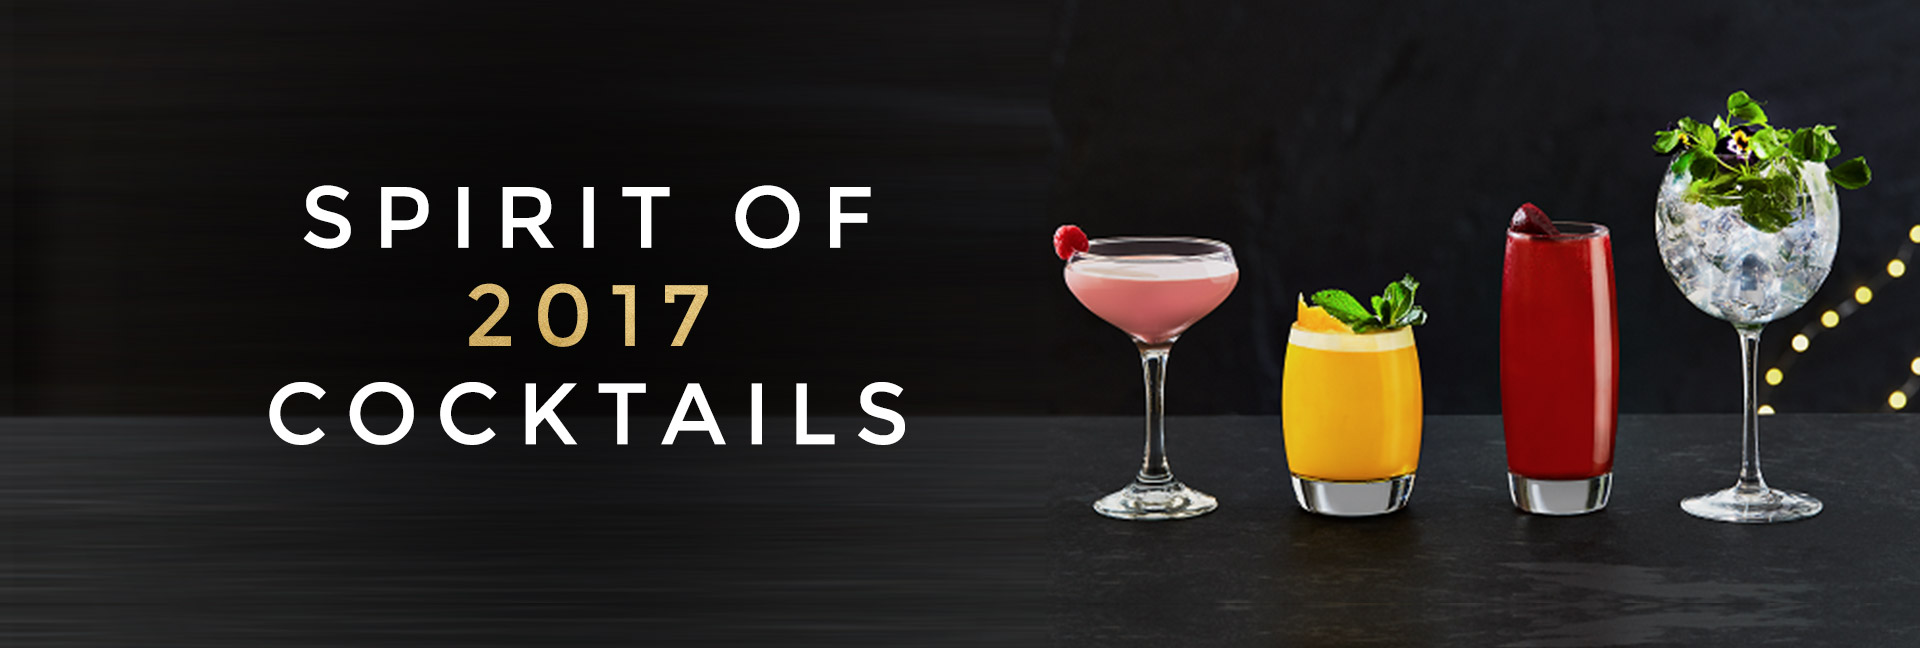 Spirit of 2017 cocktails at All Bar One Milton Keynes